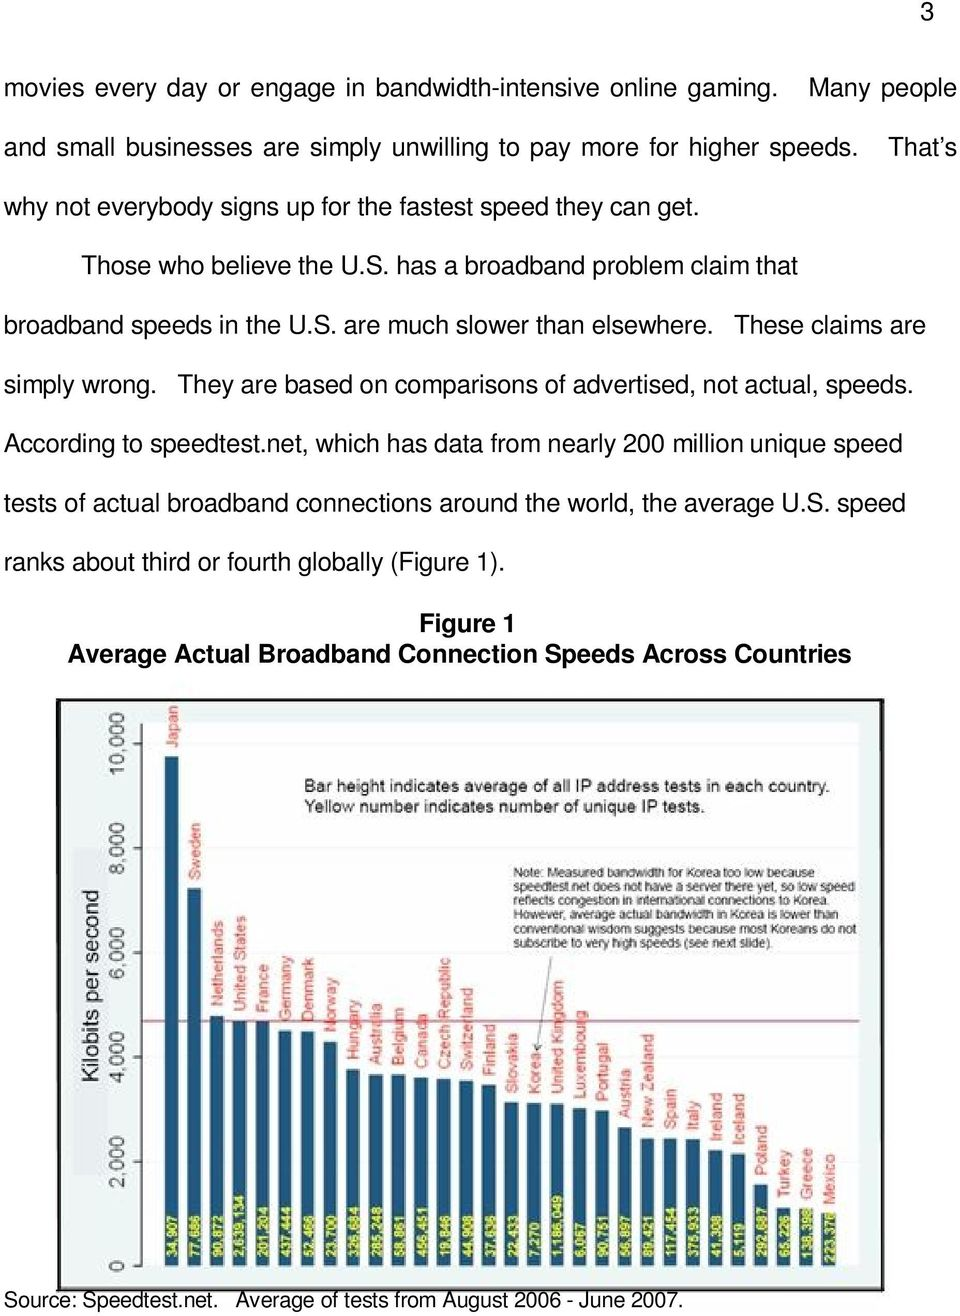 These claims are simply wrong. They are based on comparisons of advertised, not actual, speeds. According to speedtest.